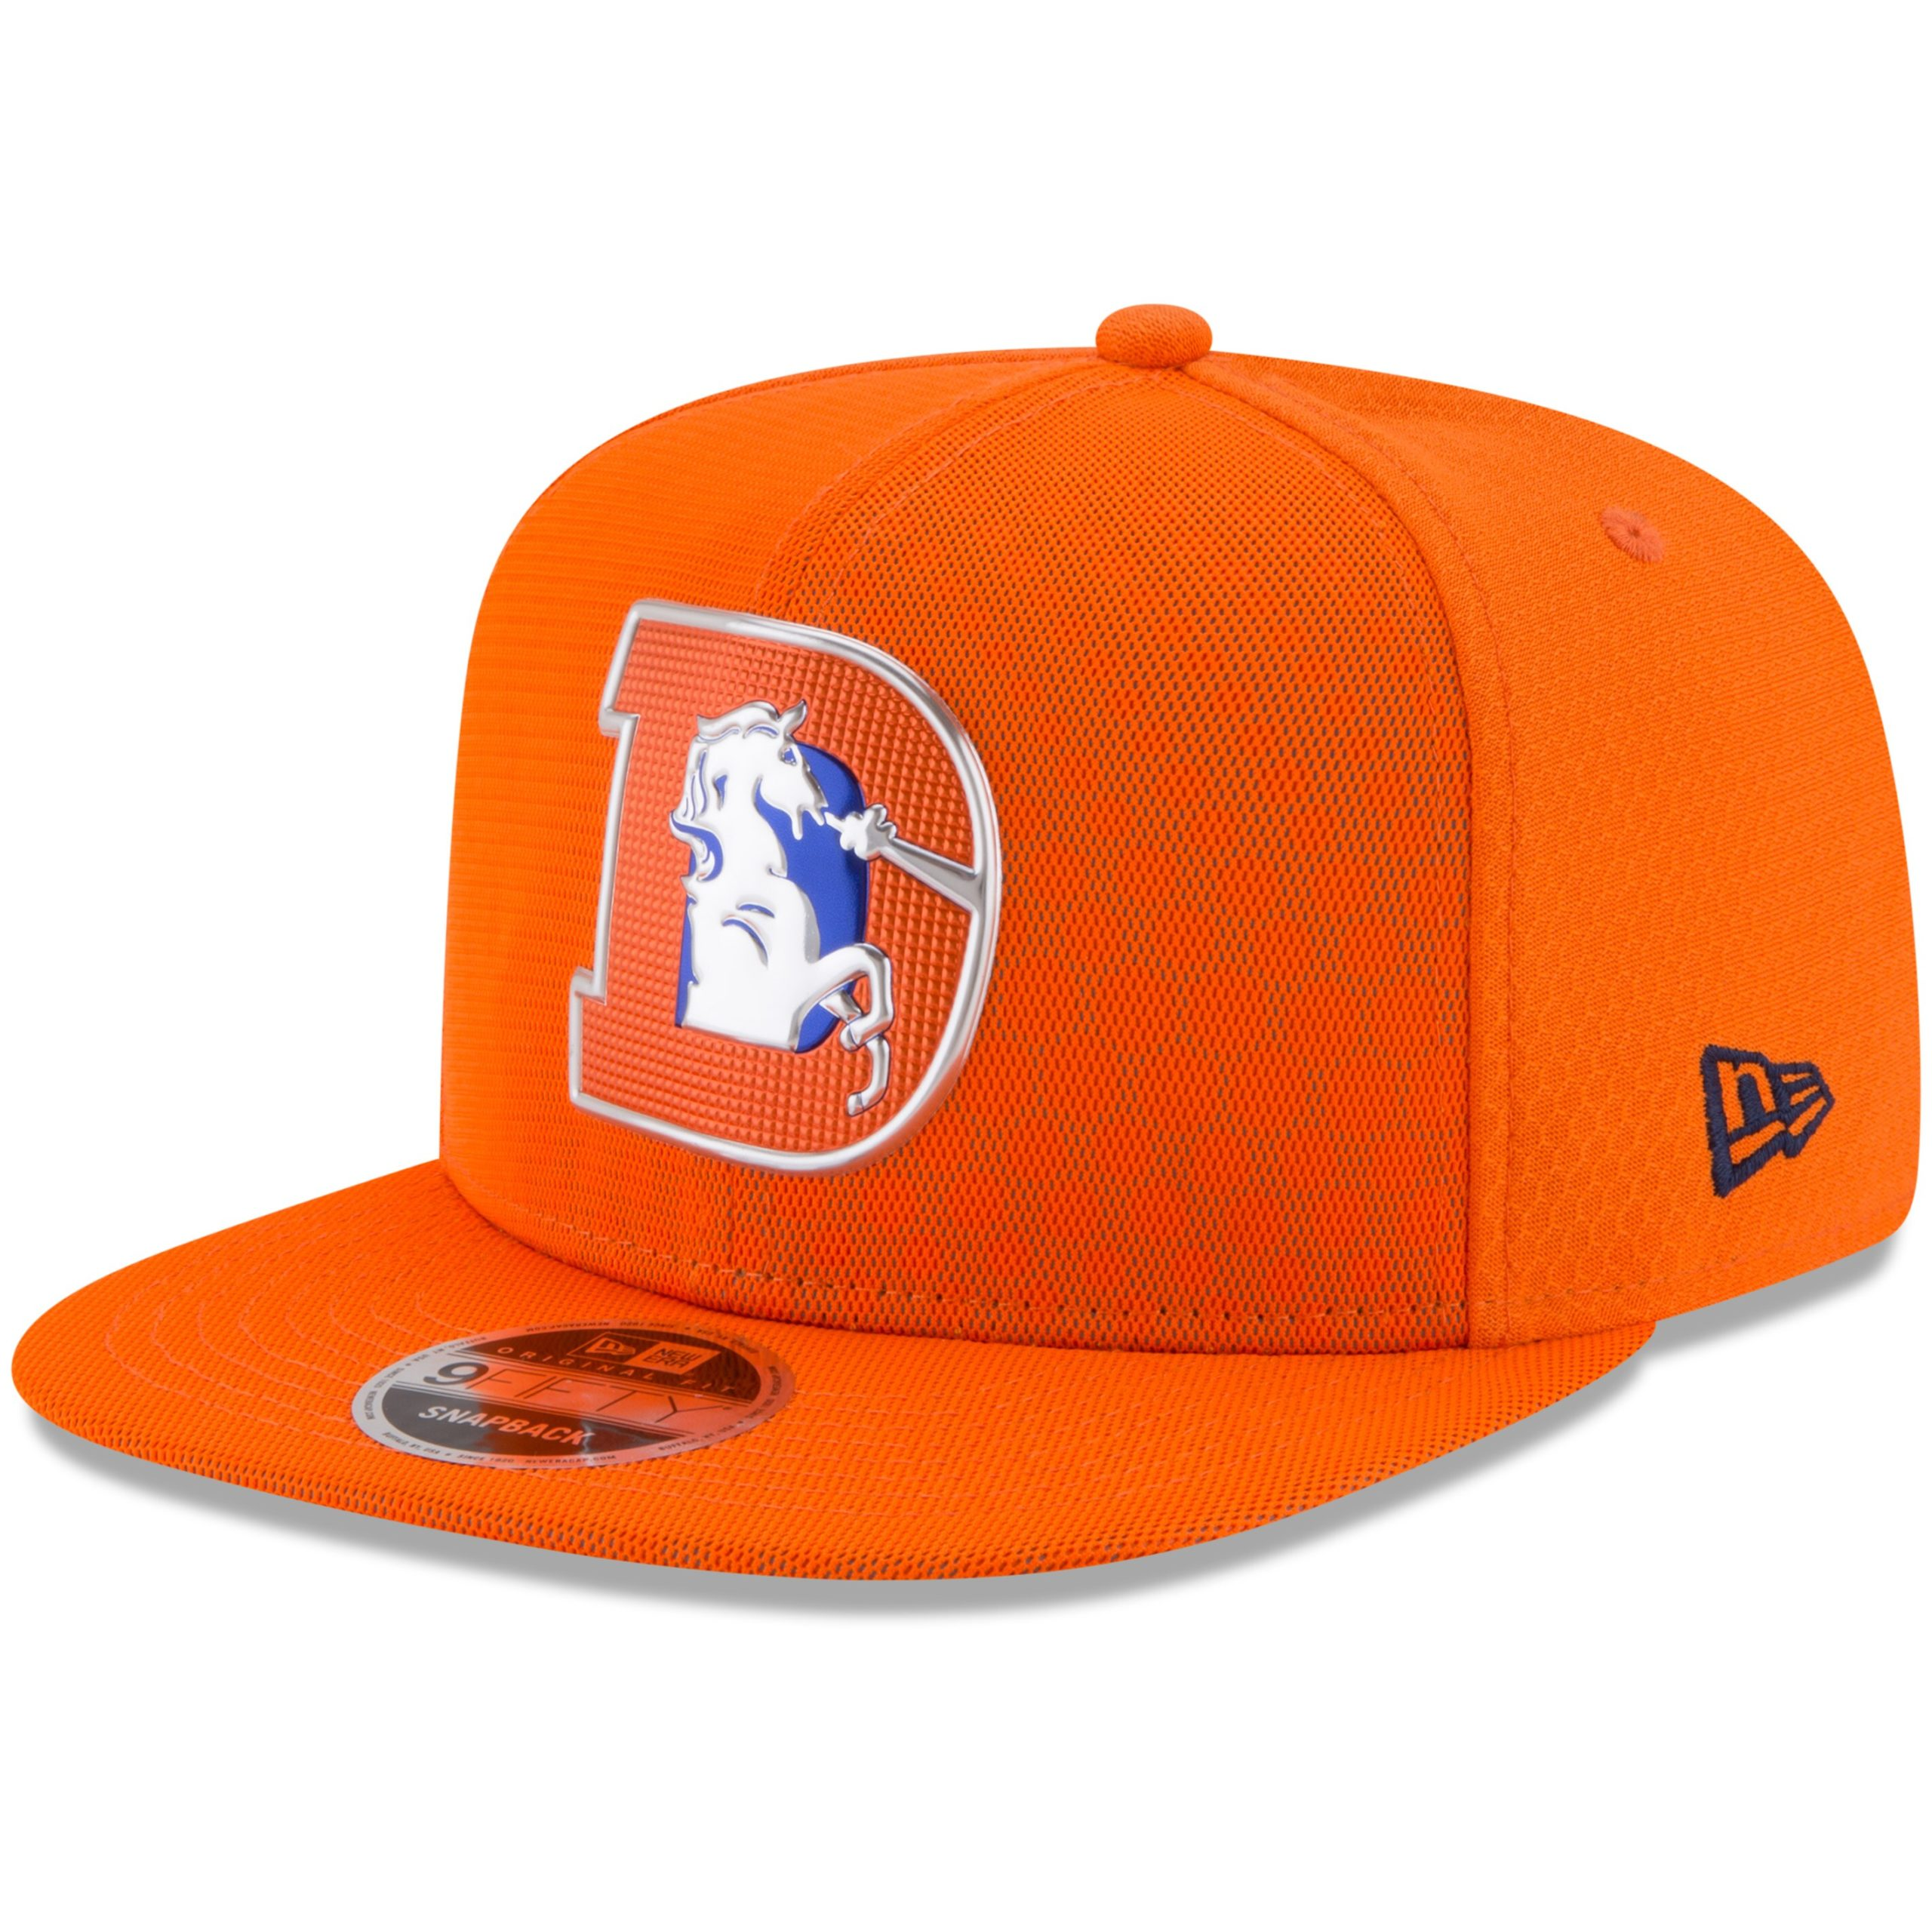 Denver Broncos New Era 2017 Color Rush 9FIFTY Snapback Adjustable Hat - Orange